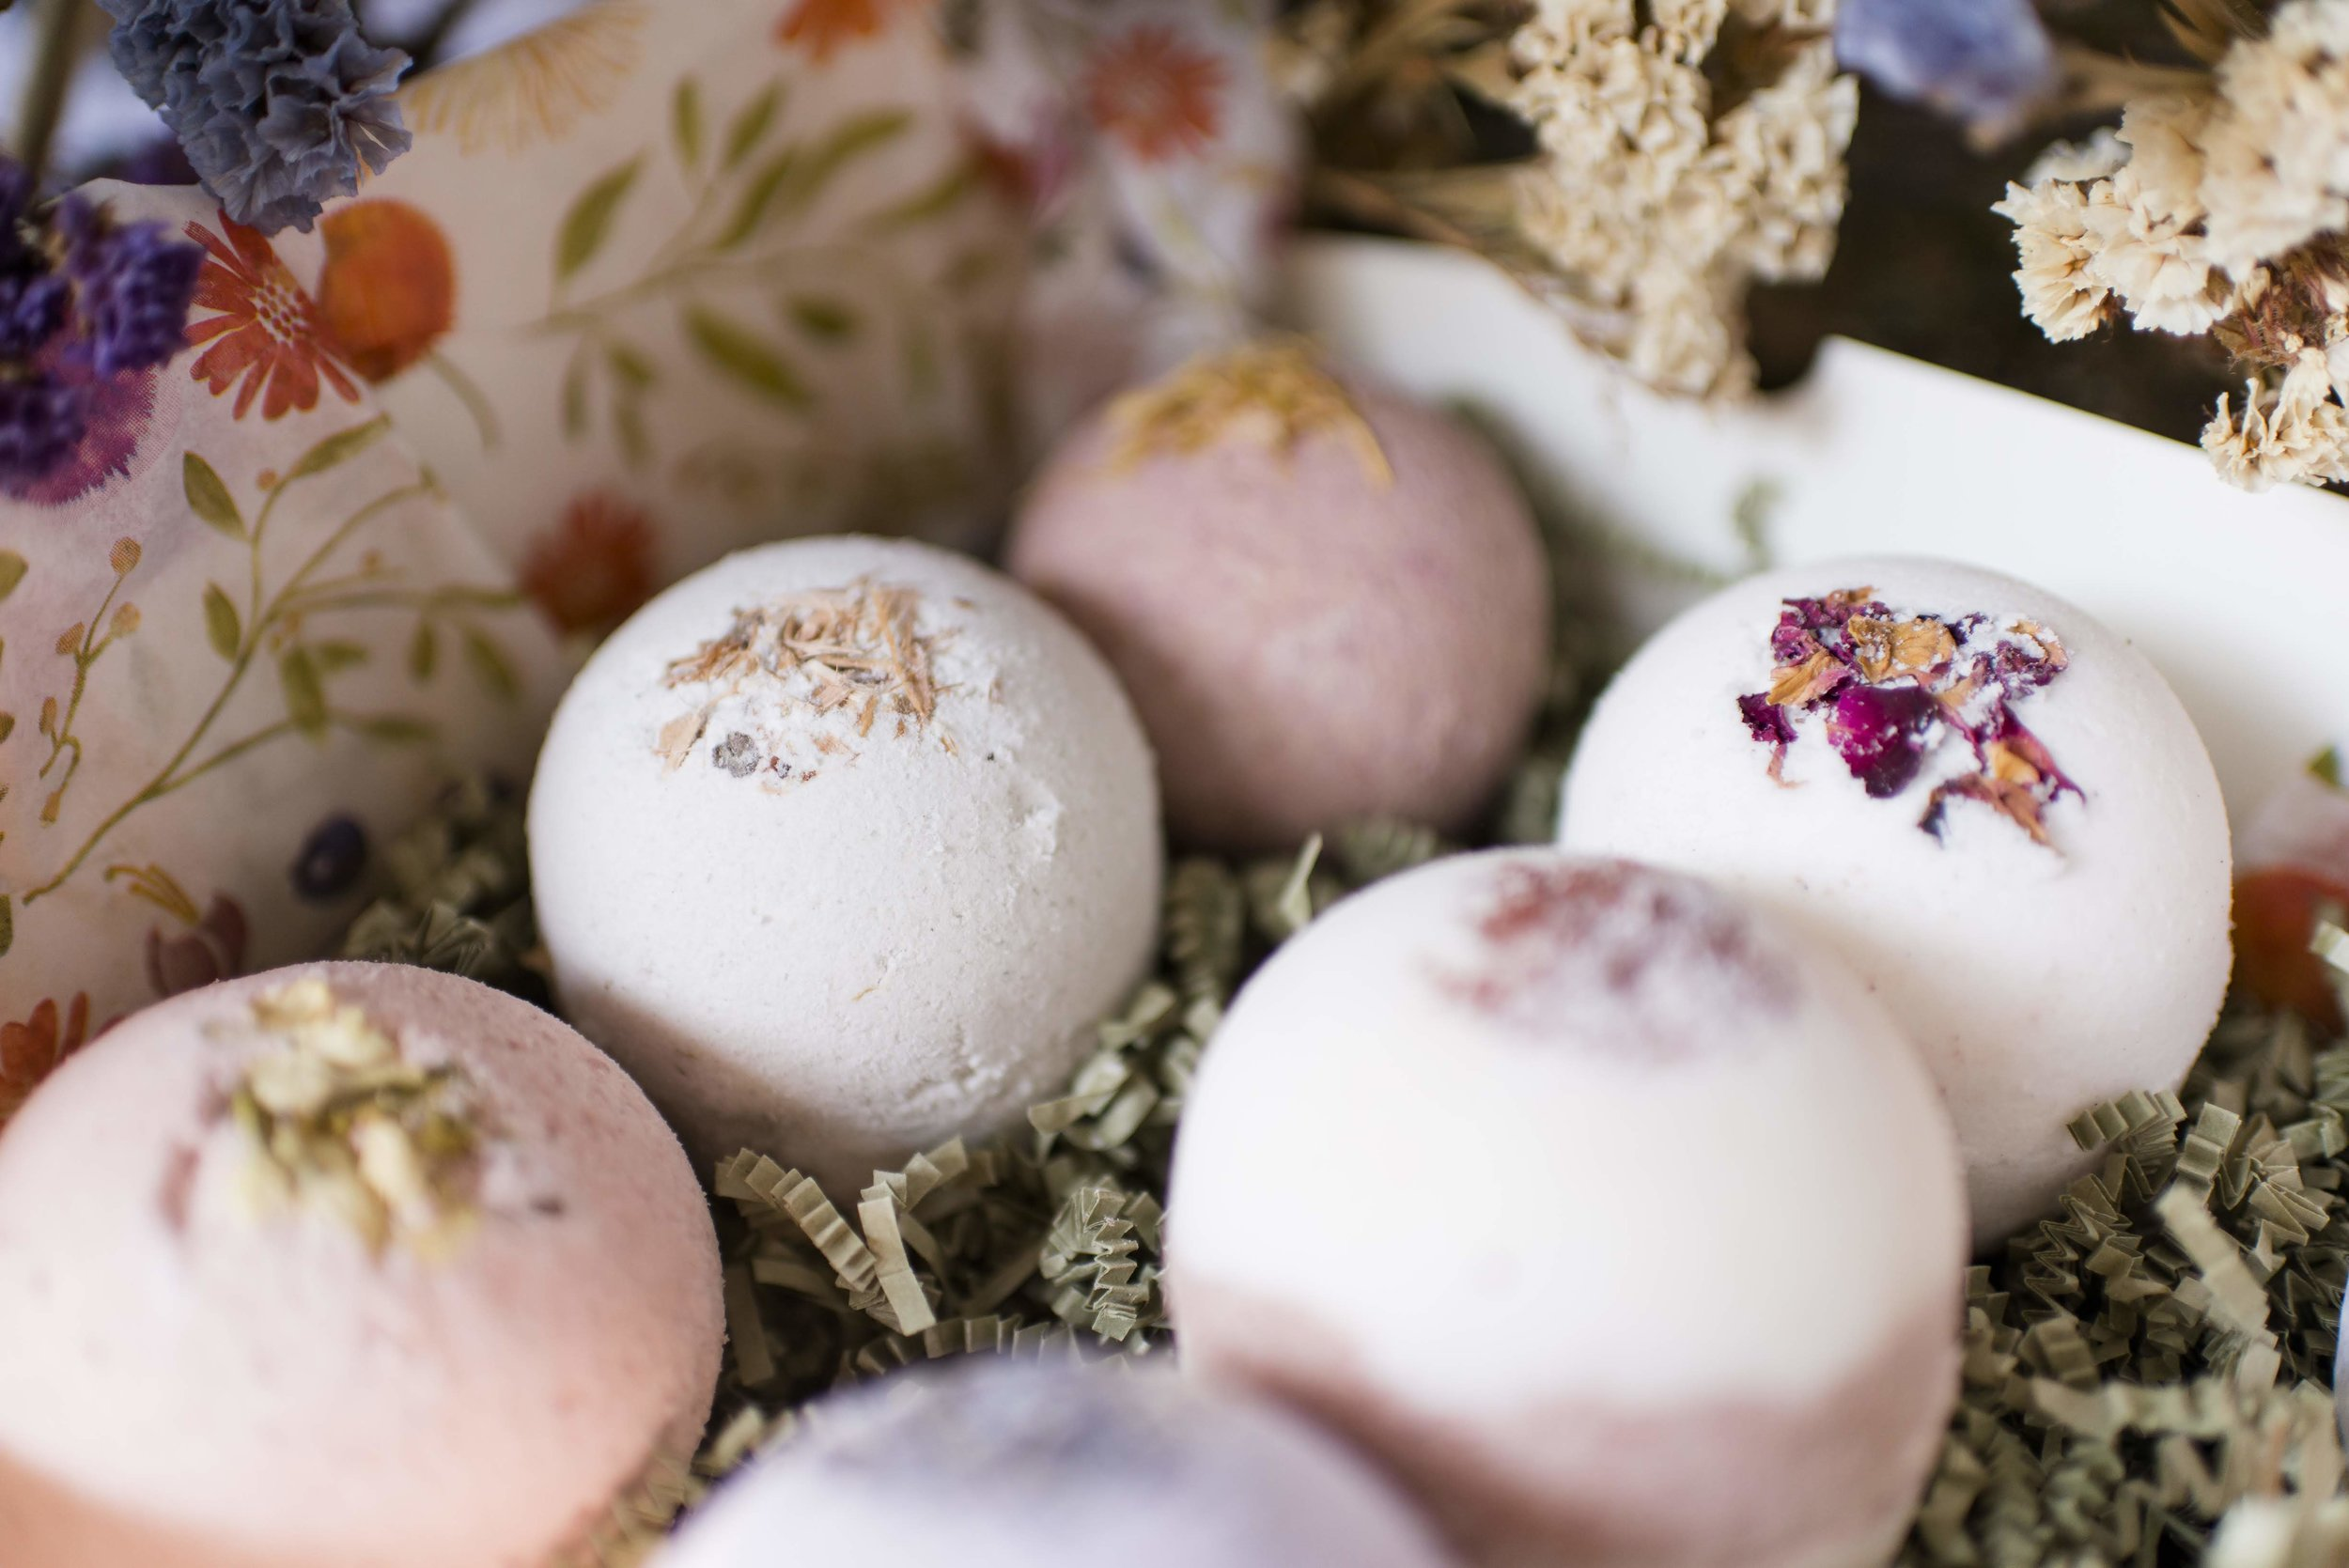 Who doesn't love to pamper herself with a luxury bath? Indulge in these JUMBO bath bombs by Cricket n Willow, and take your bath experience to a whole new level. Nourishing for your skin, amazing scents, including Jasmine Lavender and Lavender Citrus!  www.cricketnwillow.etsy.com